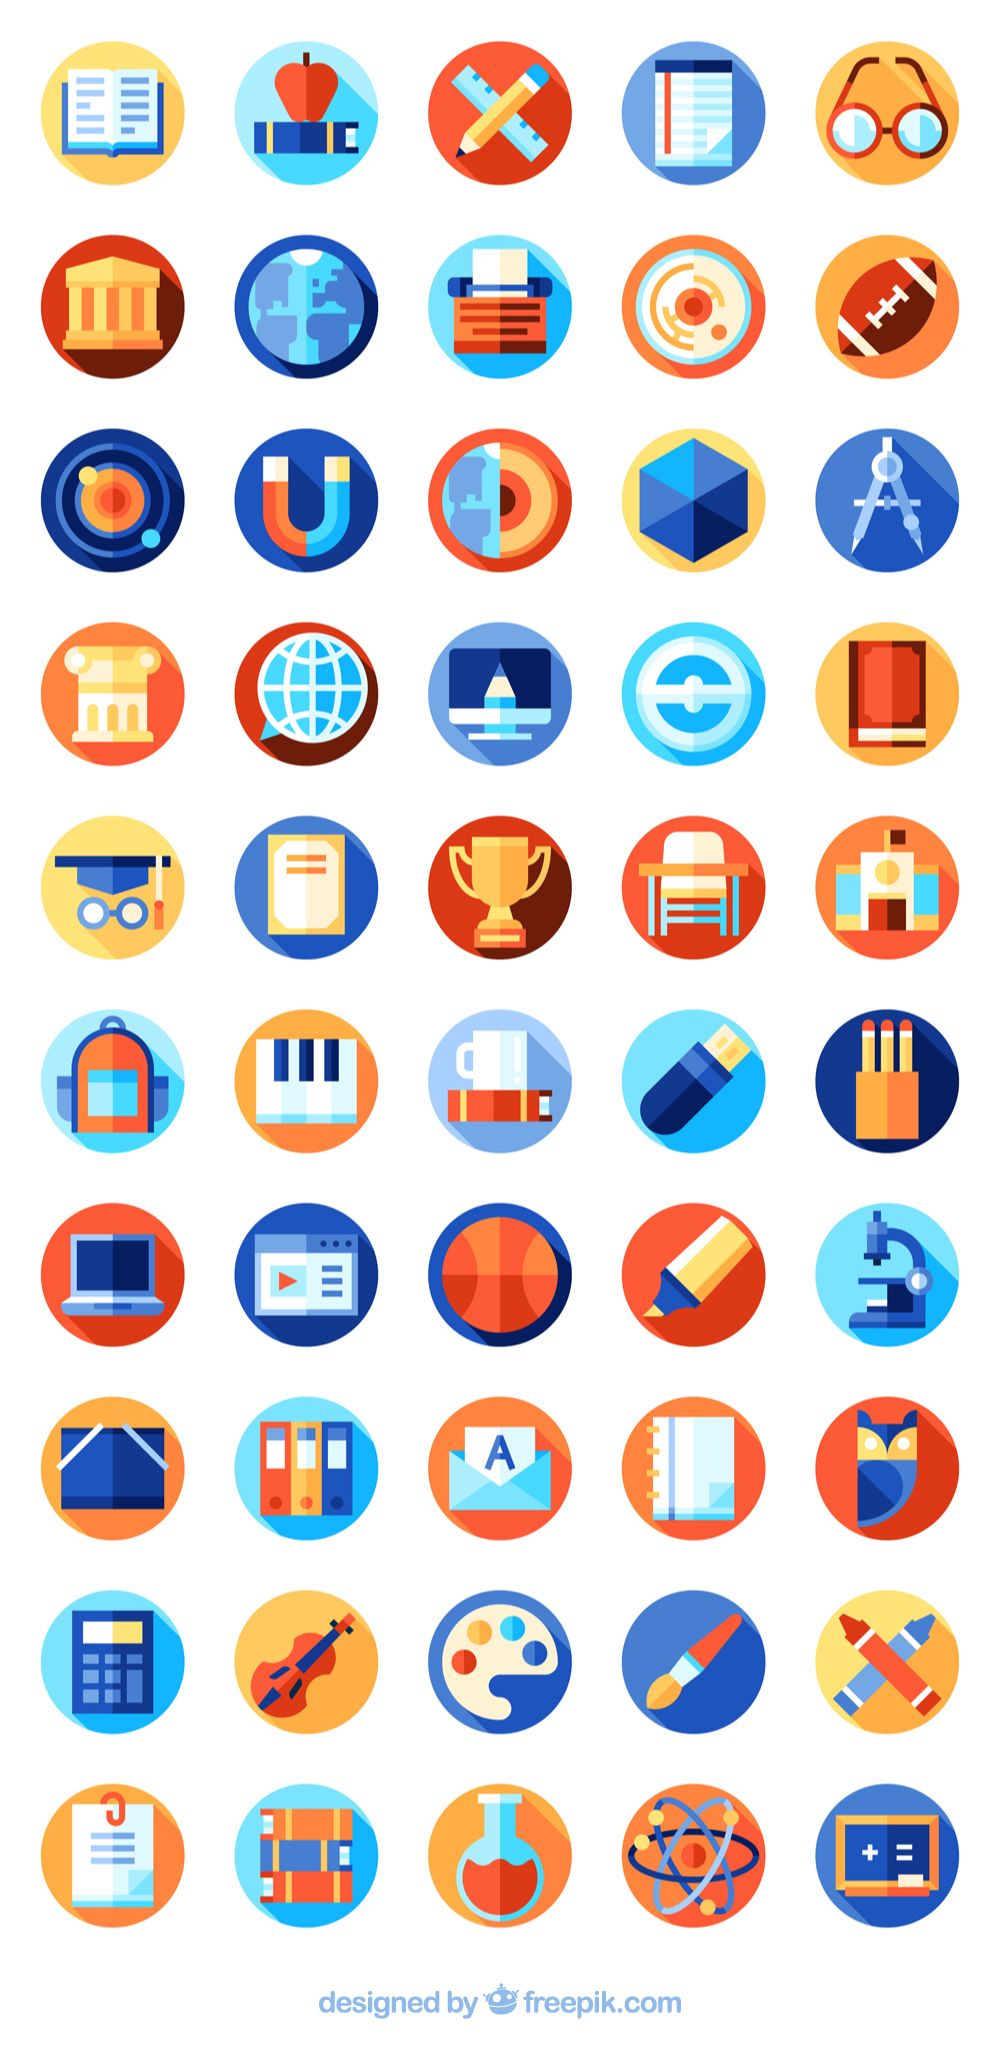 50 Premium Vector Icons Of Education Icons Designed By Freepik